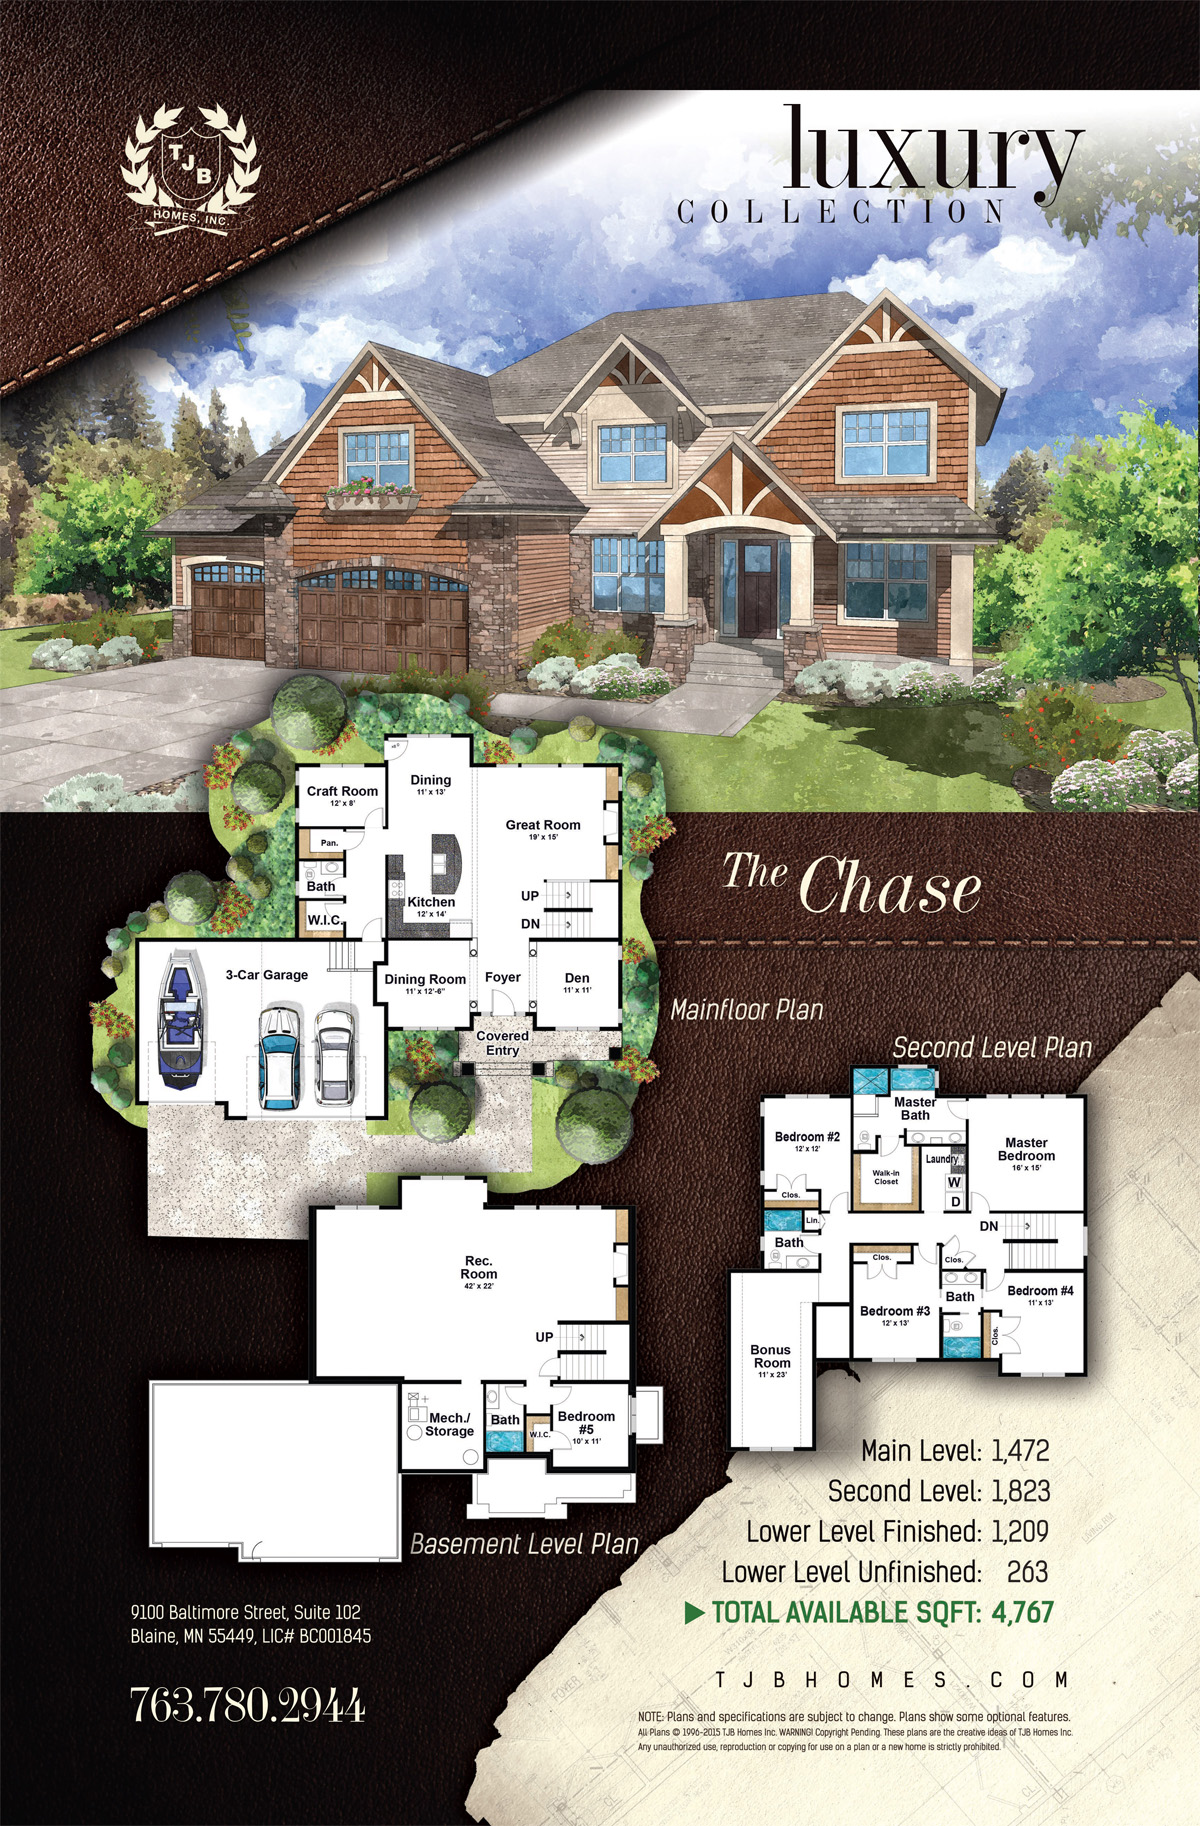 The Chase Home Plan